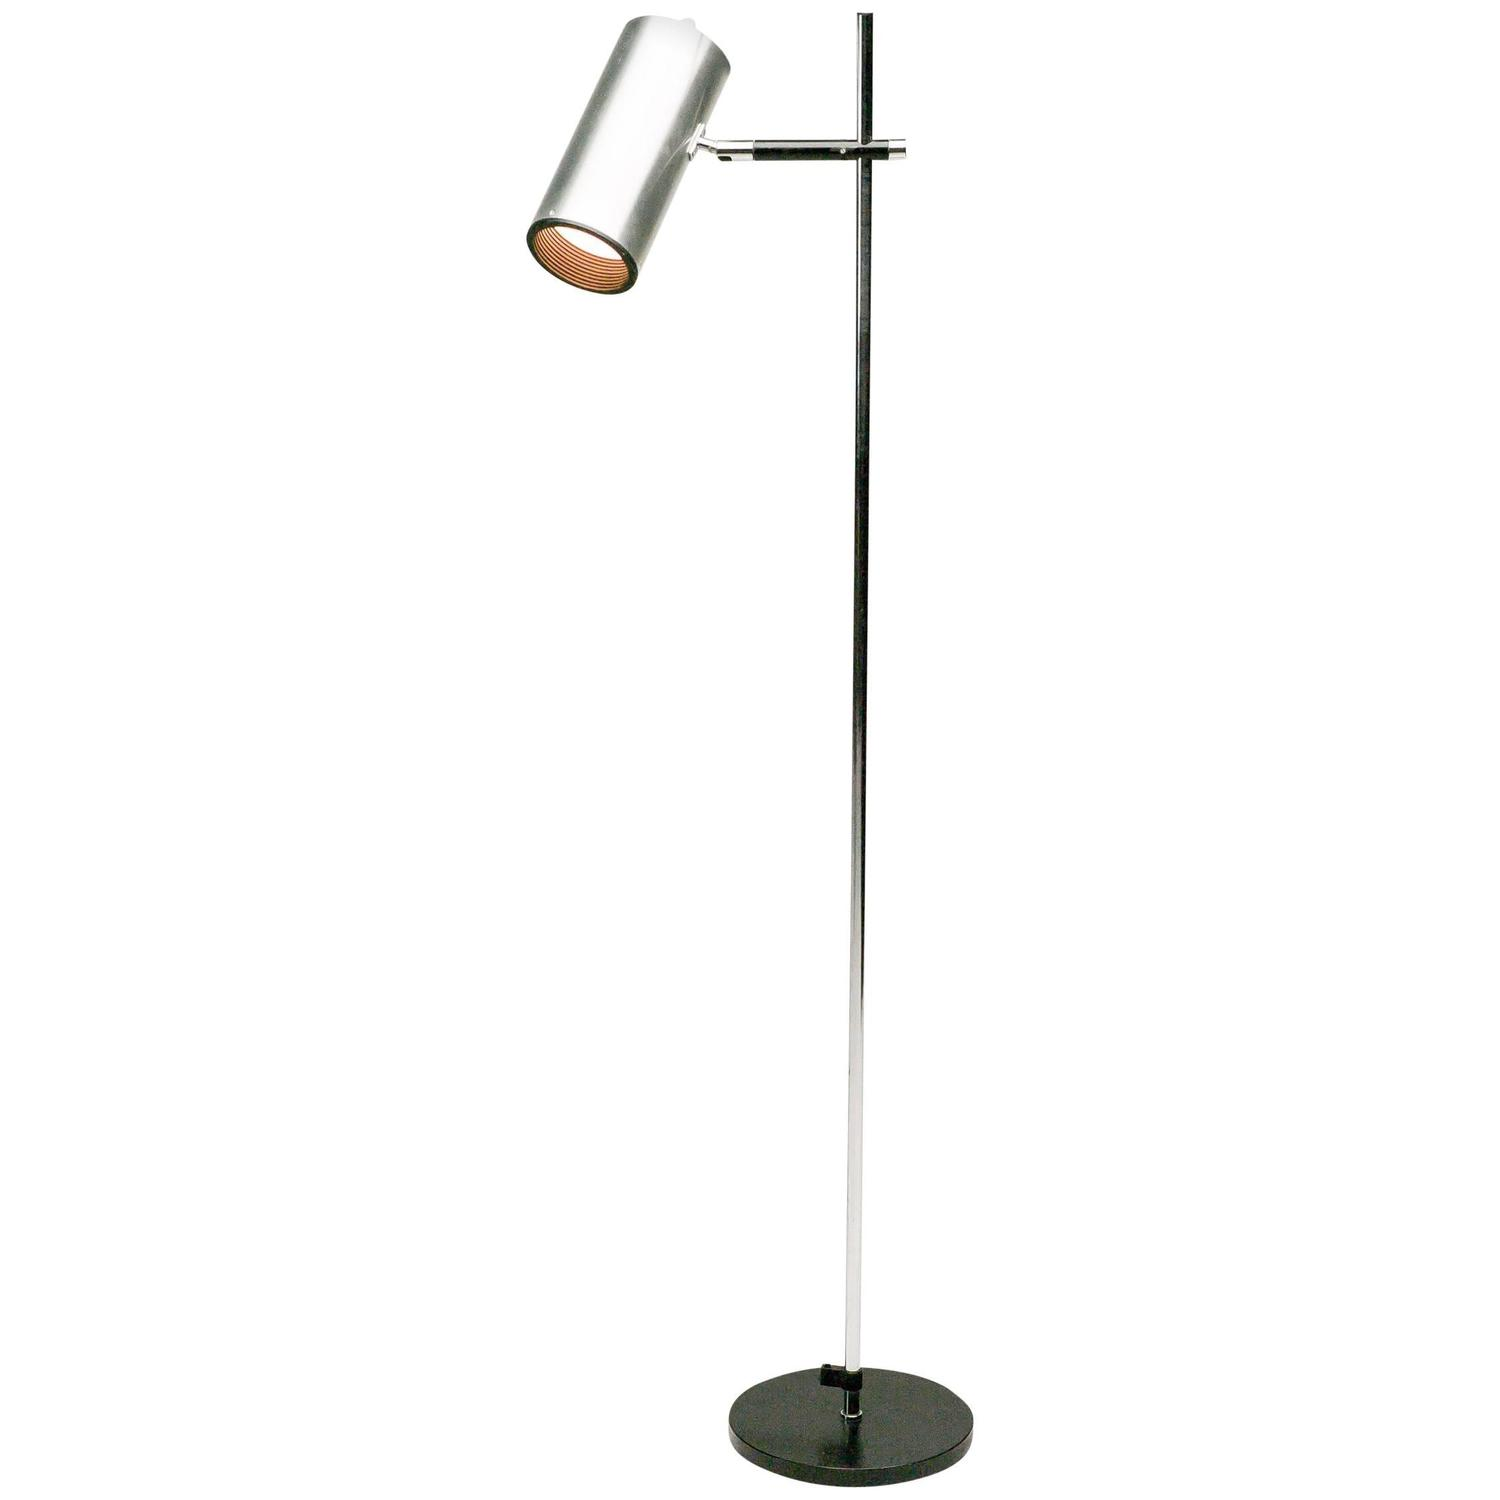 Maria pergay stainless steel floor lamp for sale at 1stdibs aloadofball Images